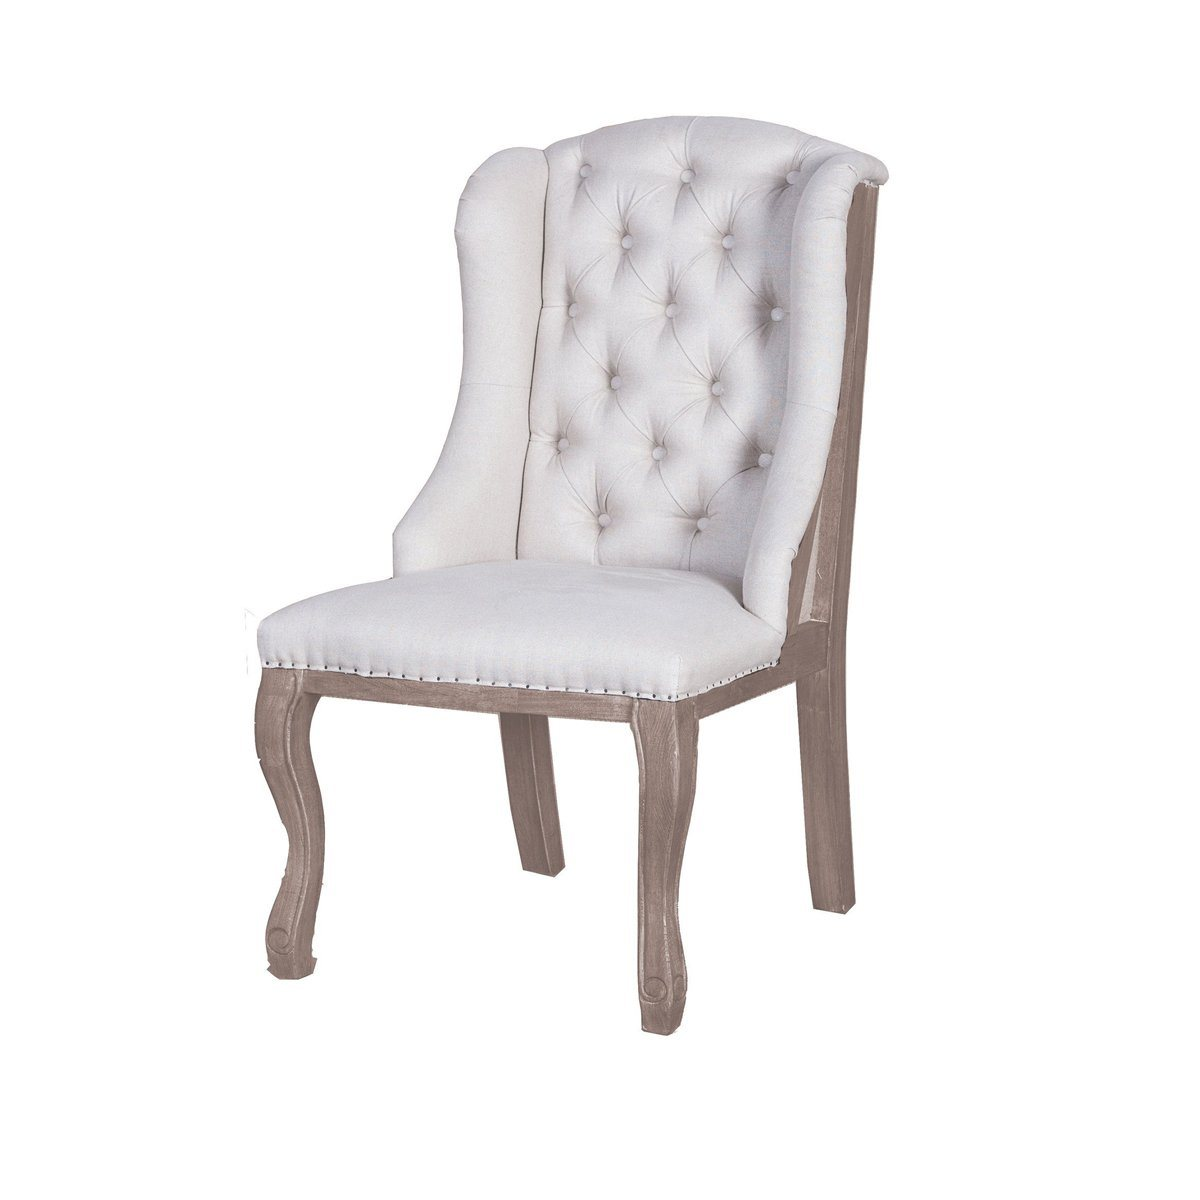 Deconstructed Arm Chair - Showhome Furniture